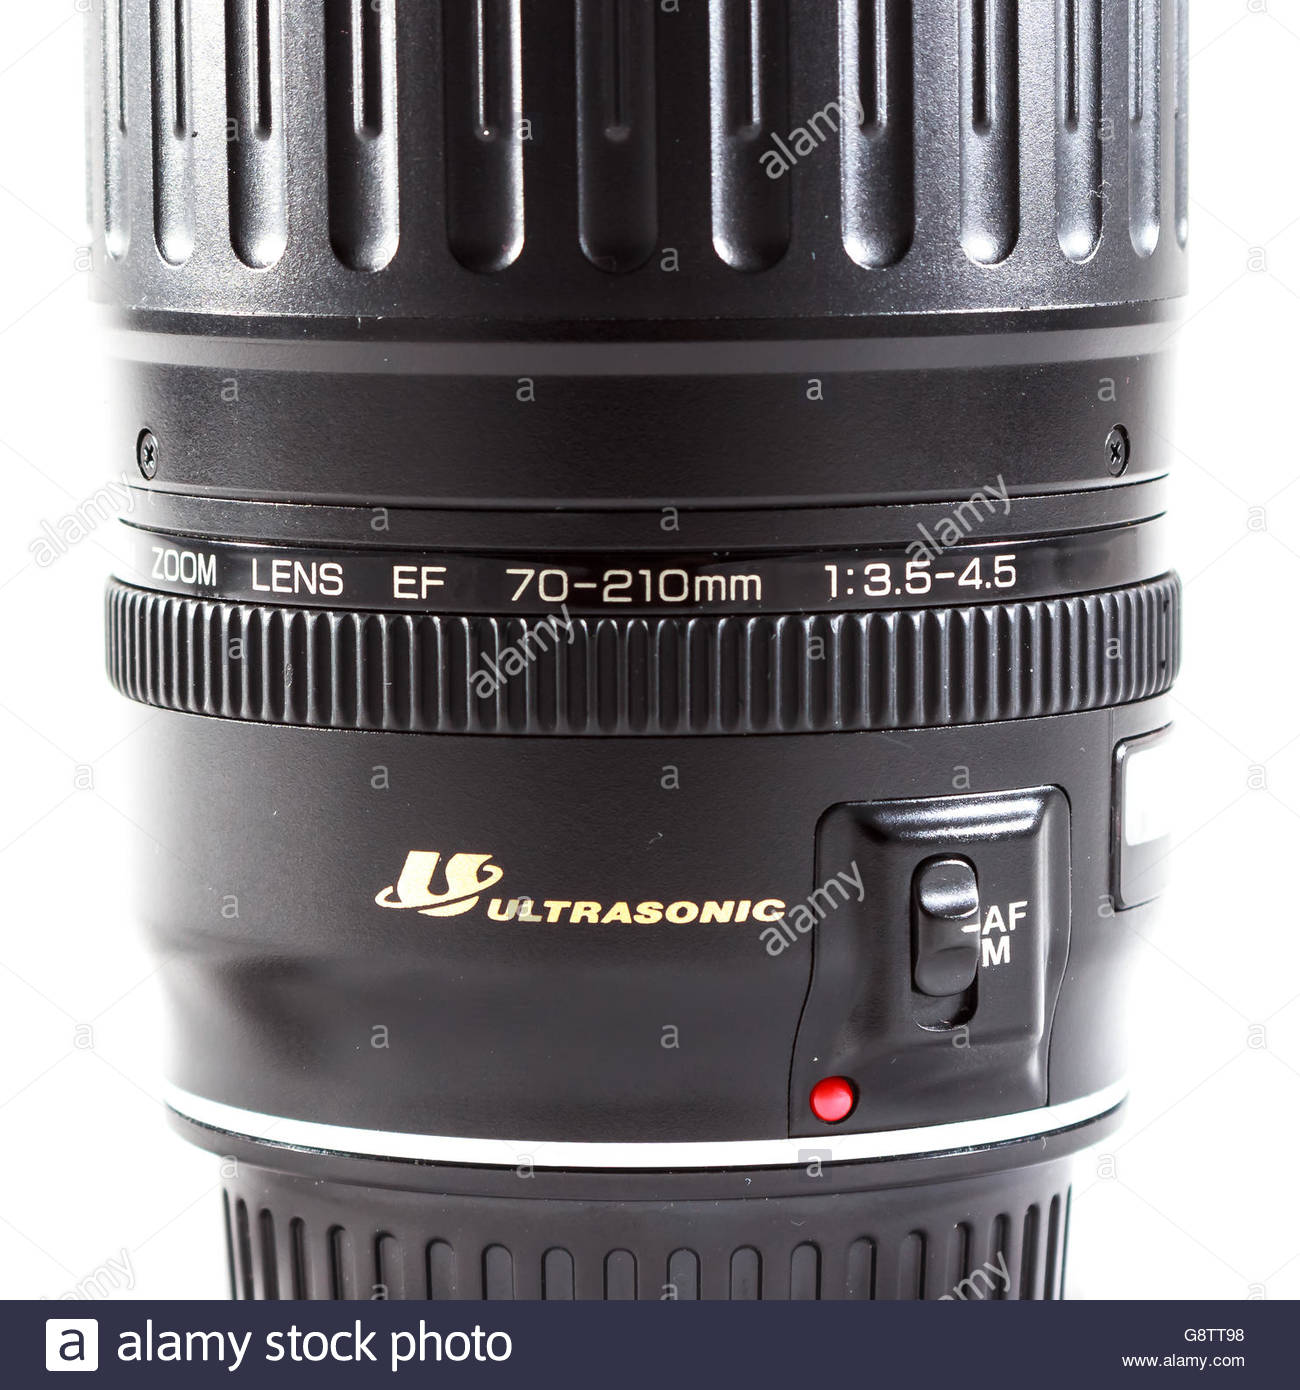 Canon EF 70-210mm f/3.5-4.5 USM lens made by Canon inc. - Stock Image